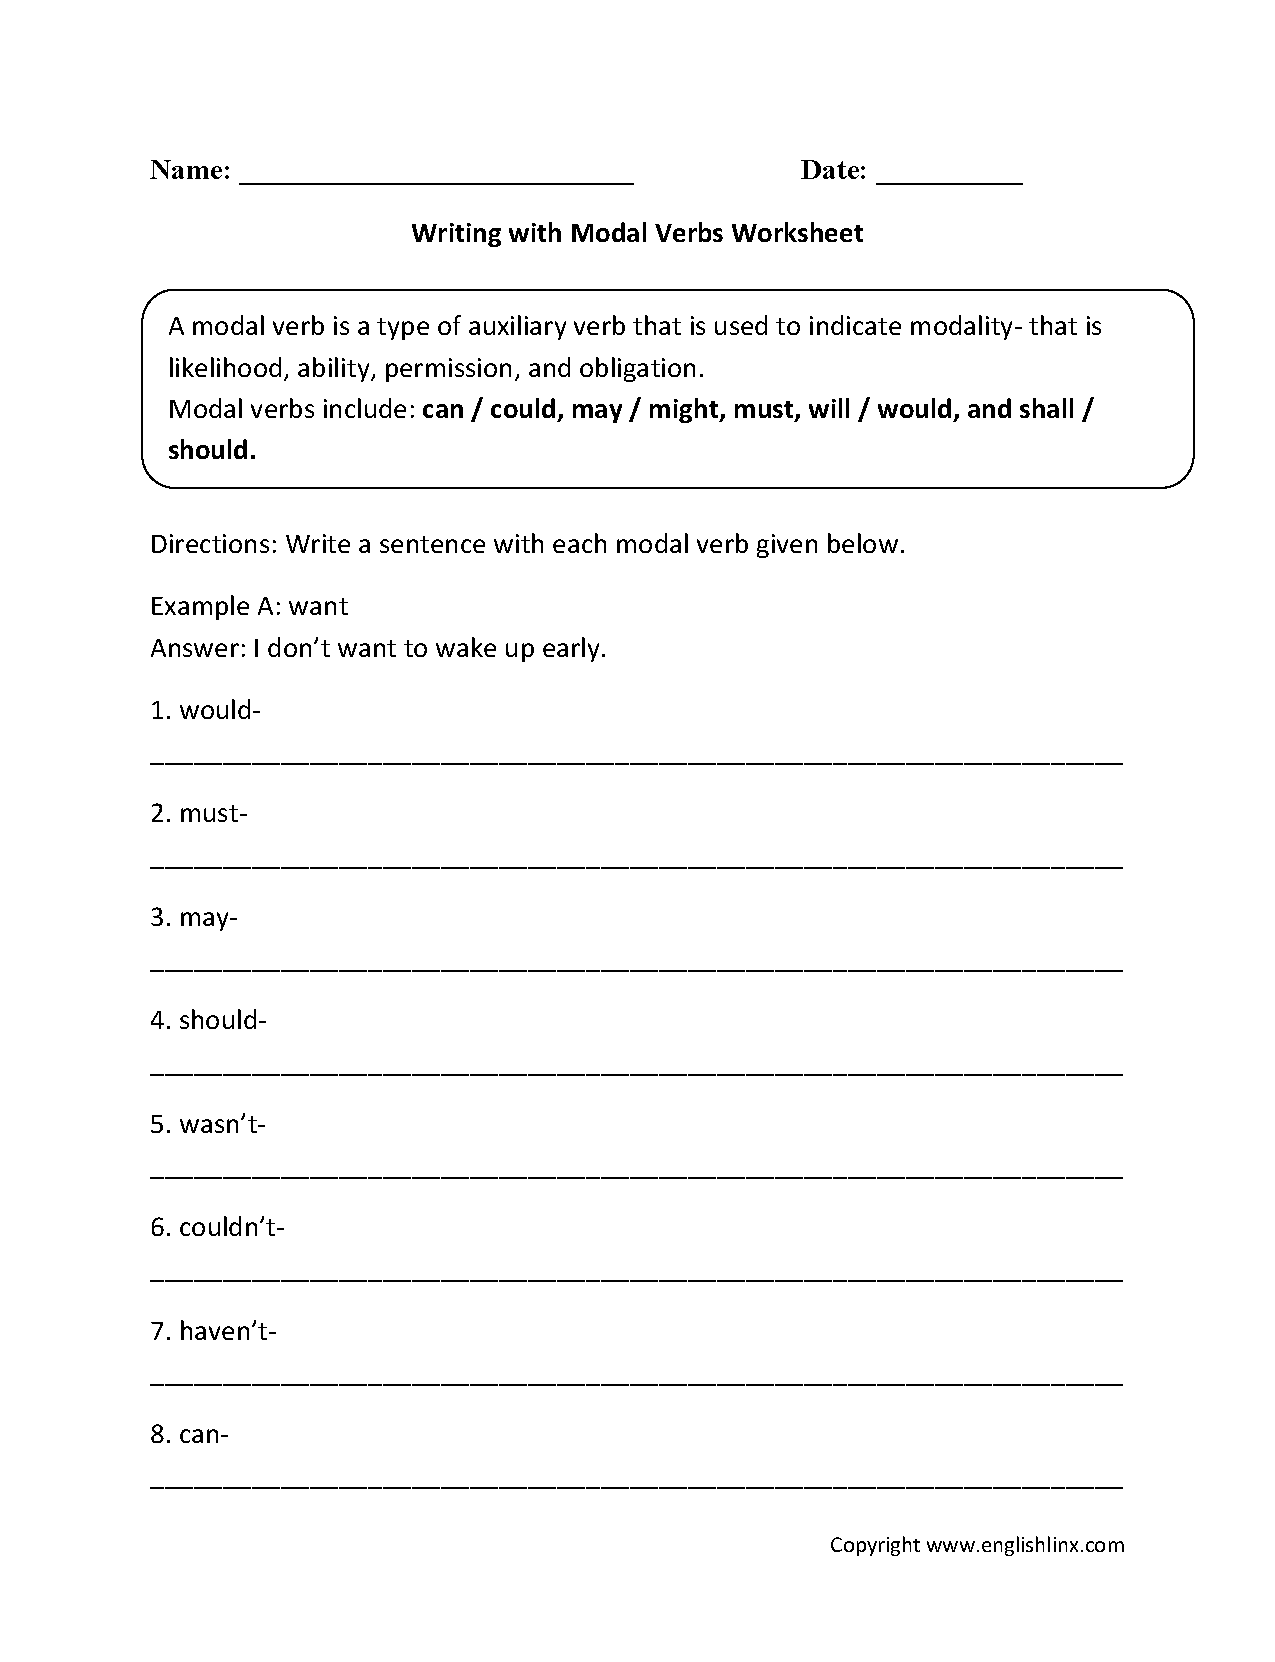 Helen Keller Worksheet For 2nd Grade